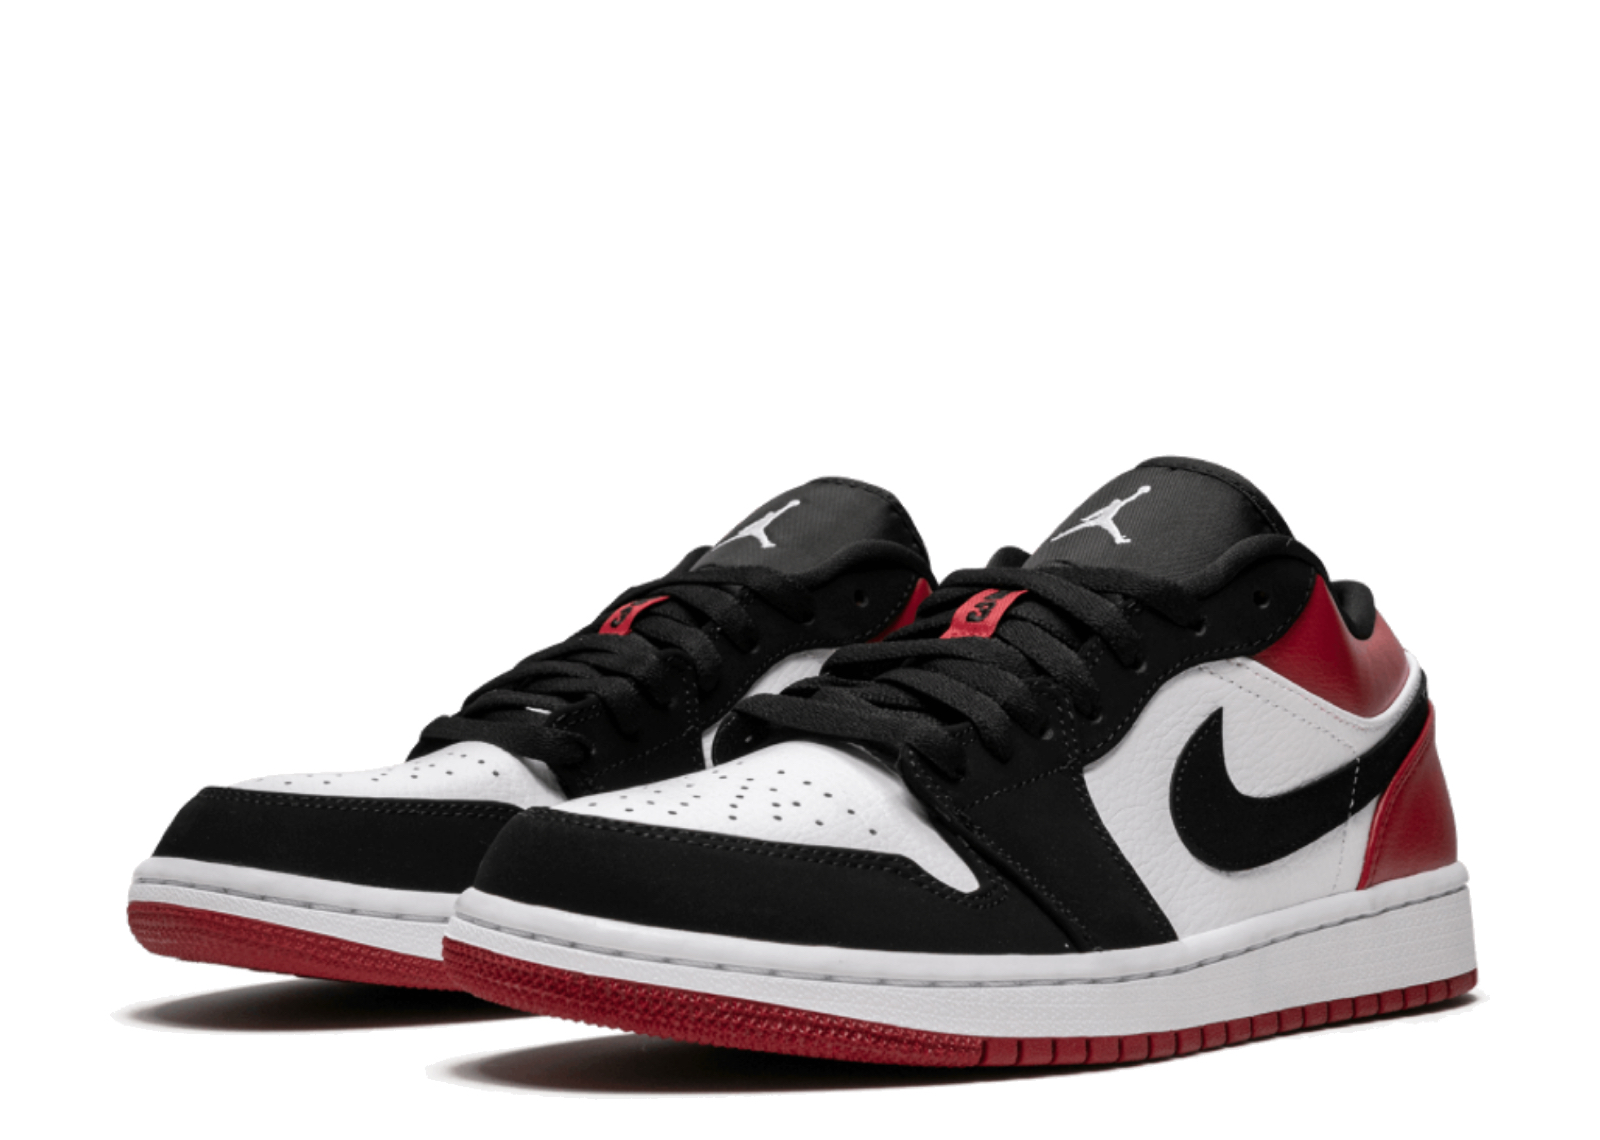 new style 2c0e5 e1d97 Jordan 1 Low Black Toe - 1